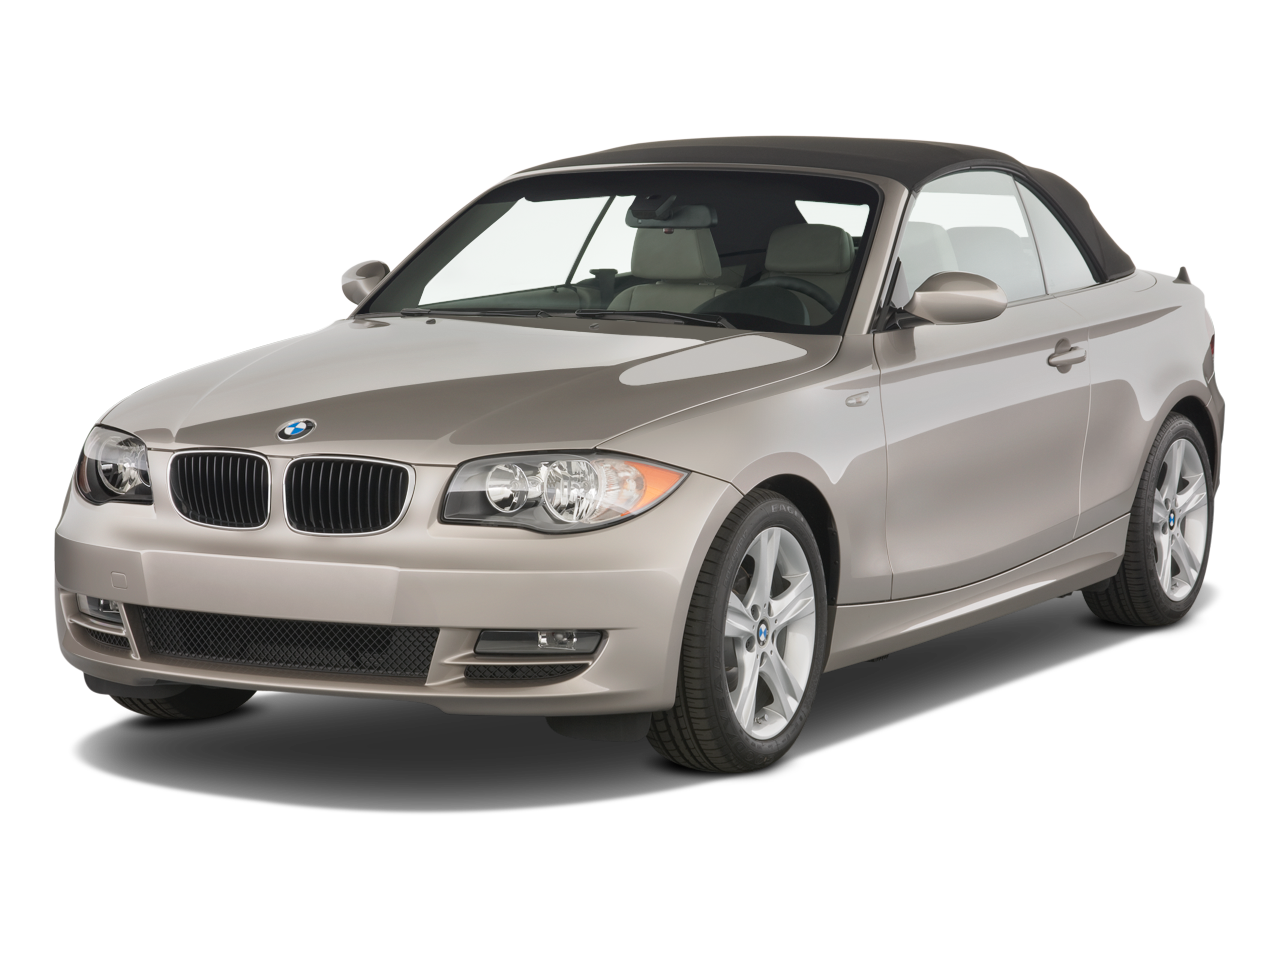 2008 bmw 135i convertible new bmw 1 series convertible review automobile magazine. Black Bedroom Furniture Sets. Home Design Ideas